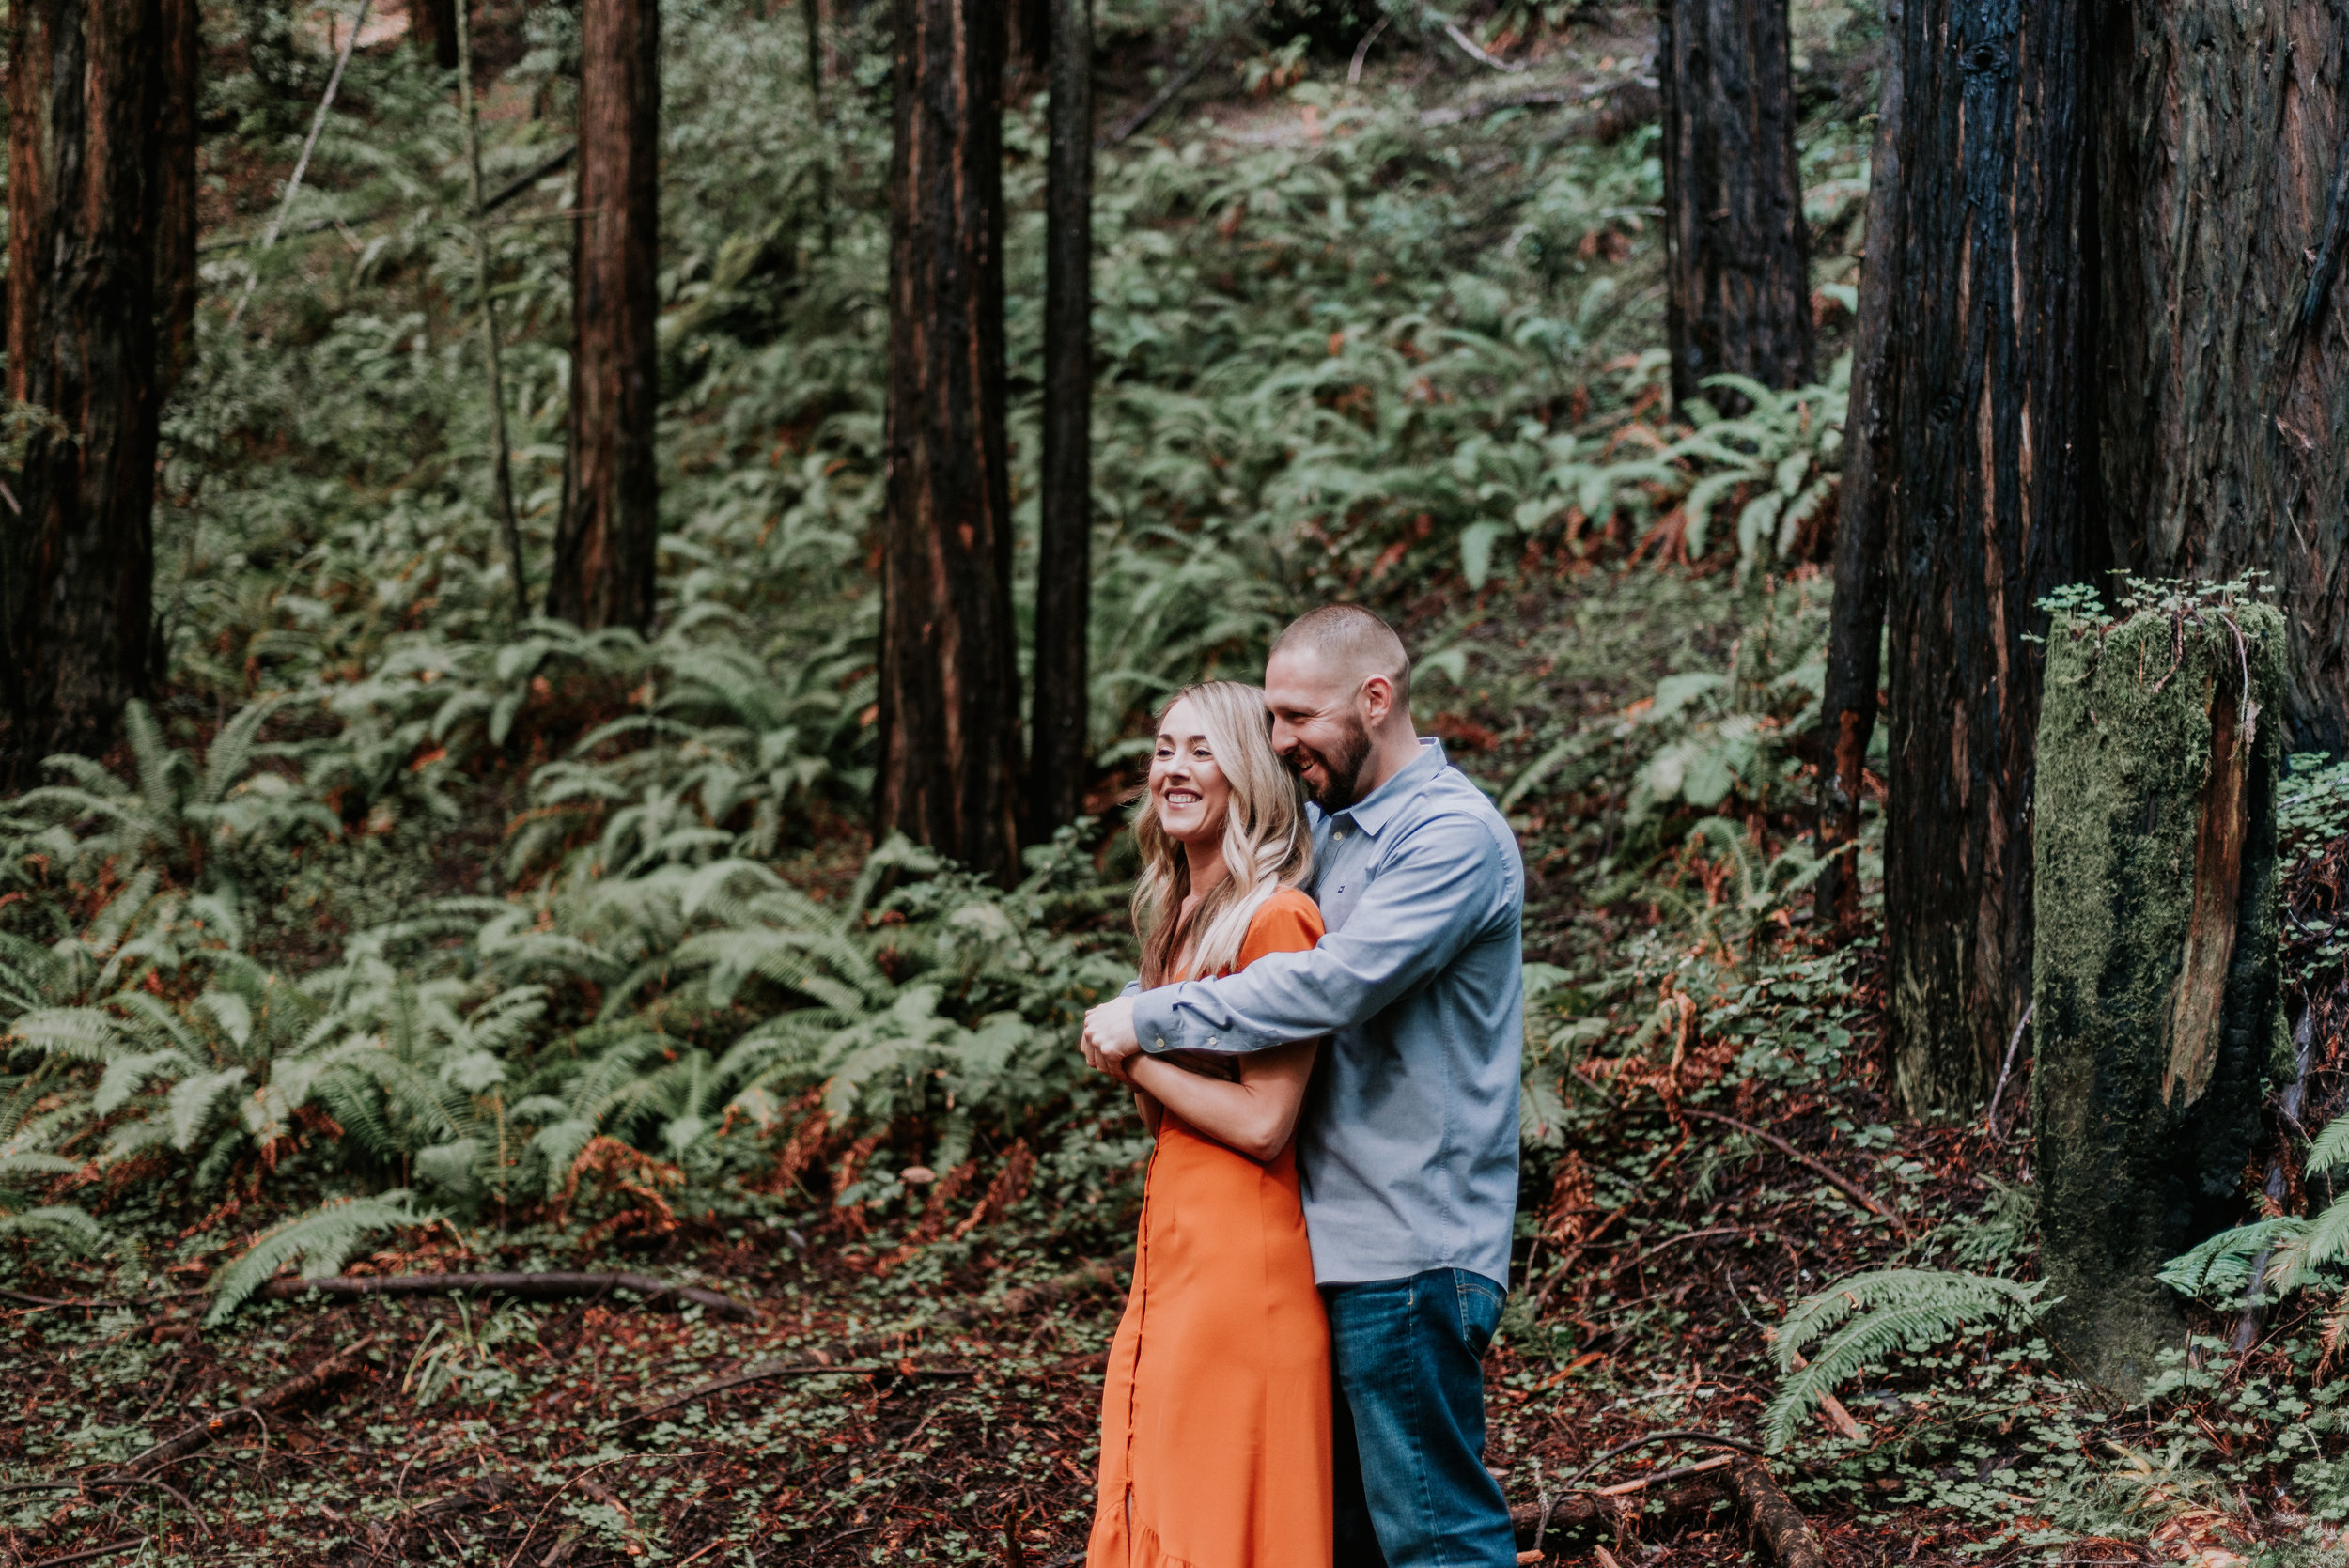 Fort Bragg+-Mendocino+California+-Couples+photographer